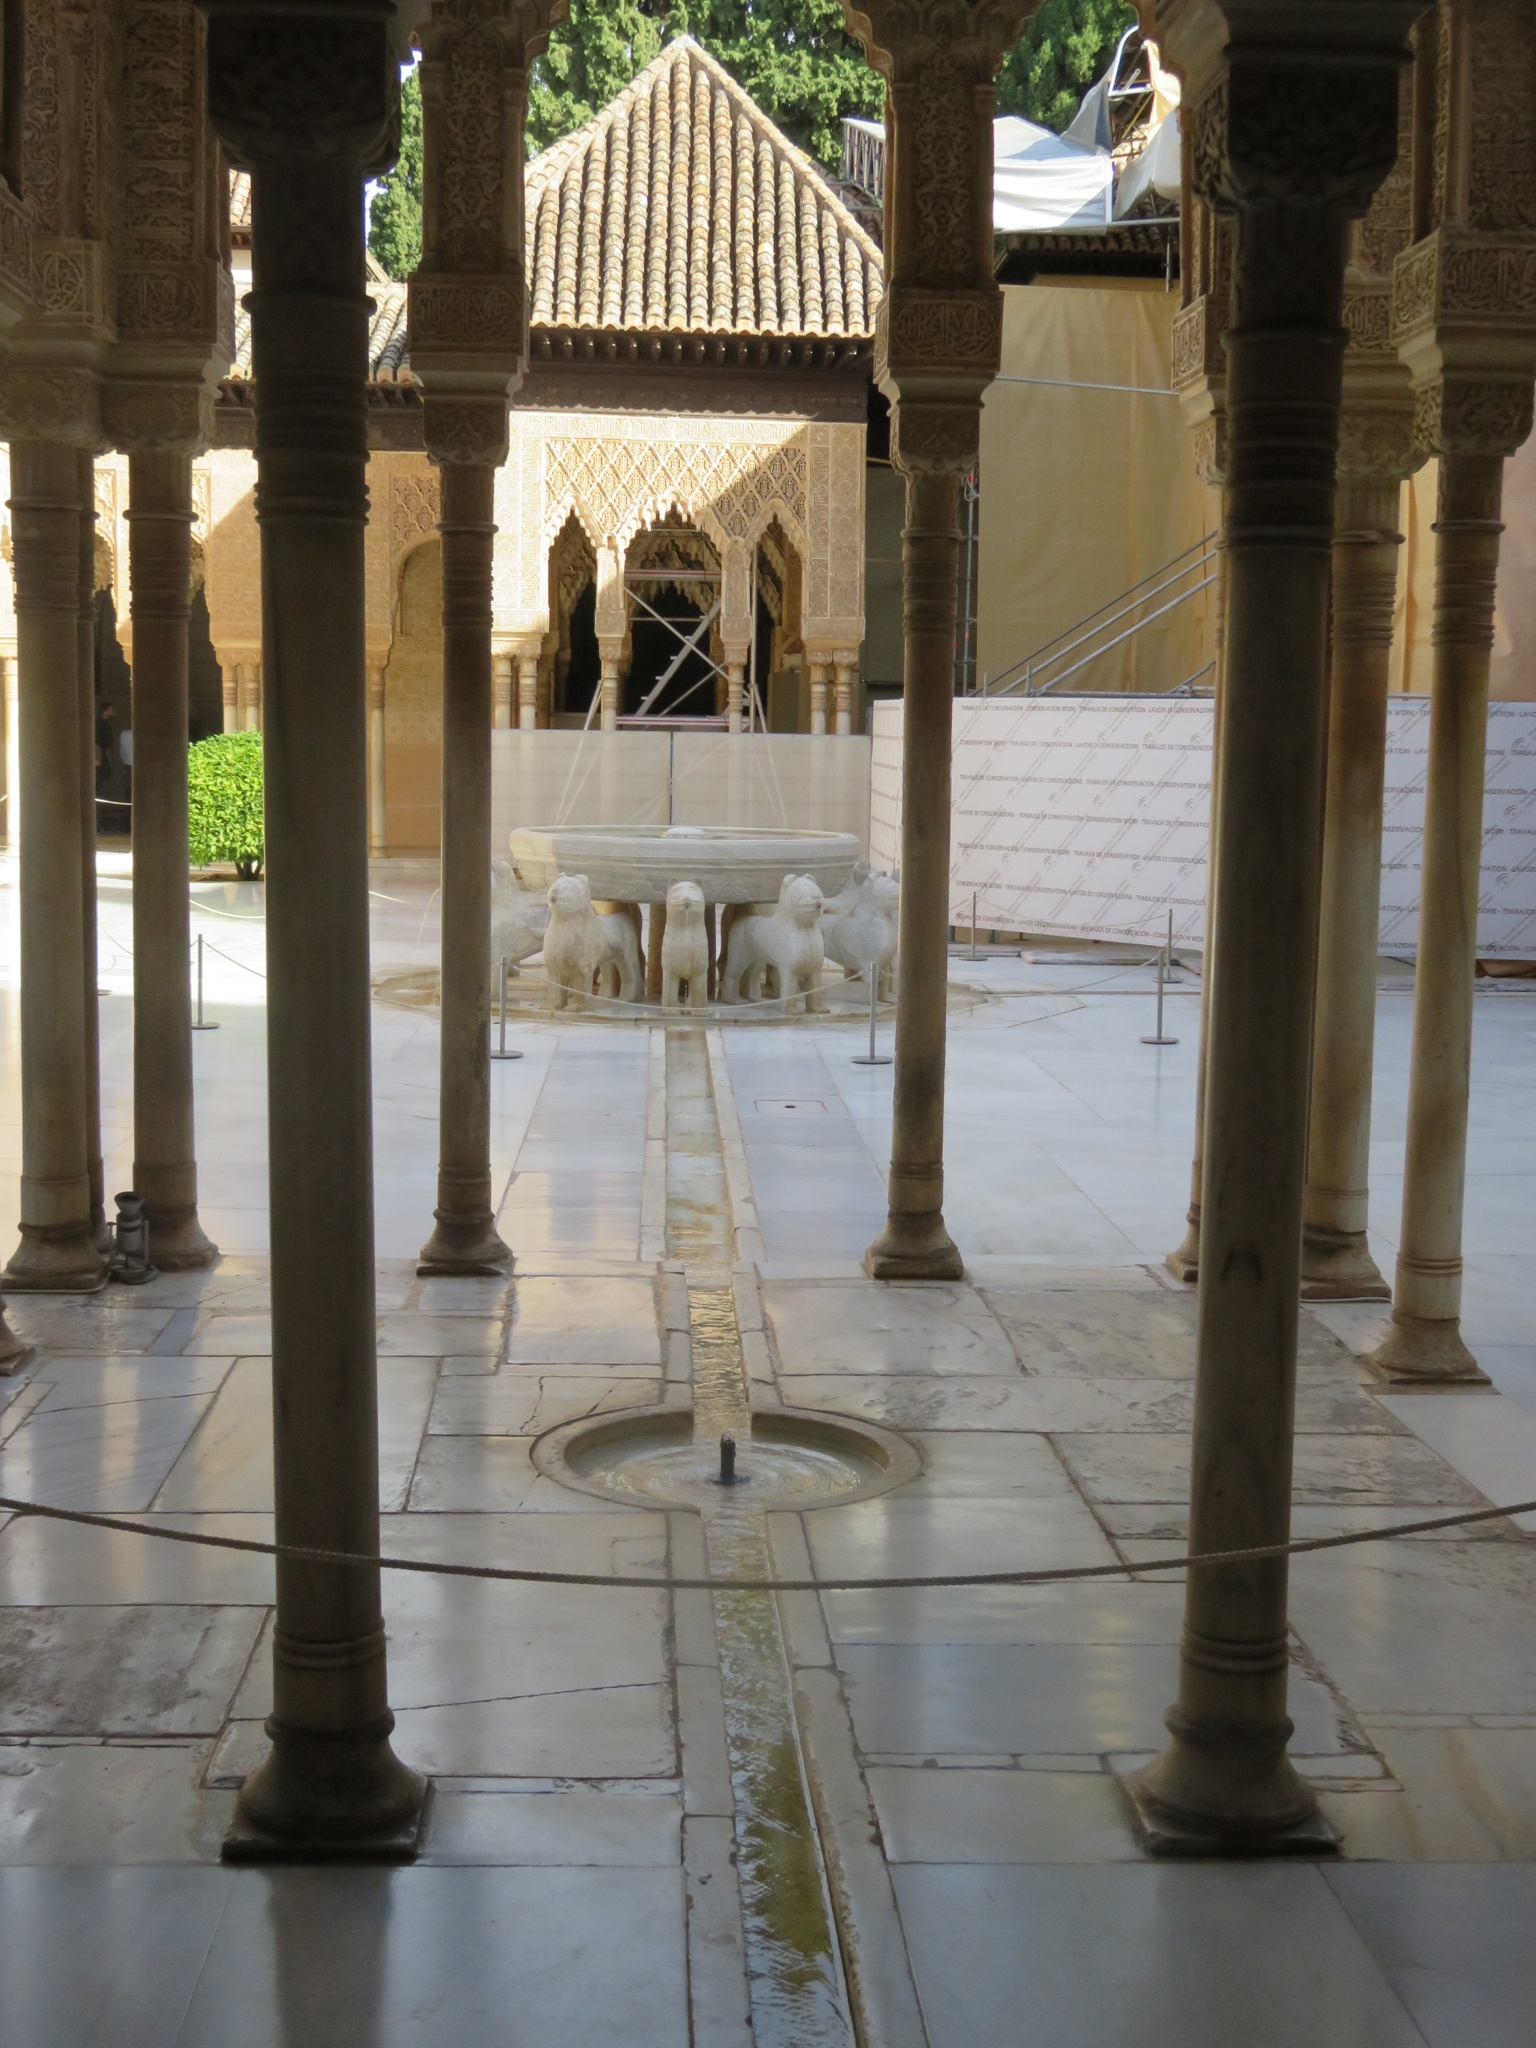 Courtyard of the Lions - Moorish marble fountain from the 1300's that the conuerying Christians took apar to figure out how it worked -- was not functioning again until 2012.  There are 124 columns in the courtyard that have lead fittings to allow the building to 'flex' during earthquakes